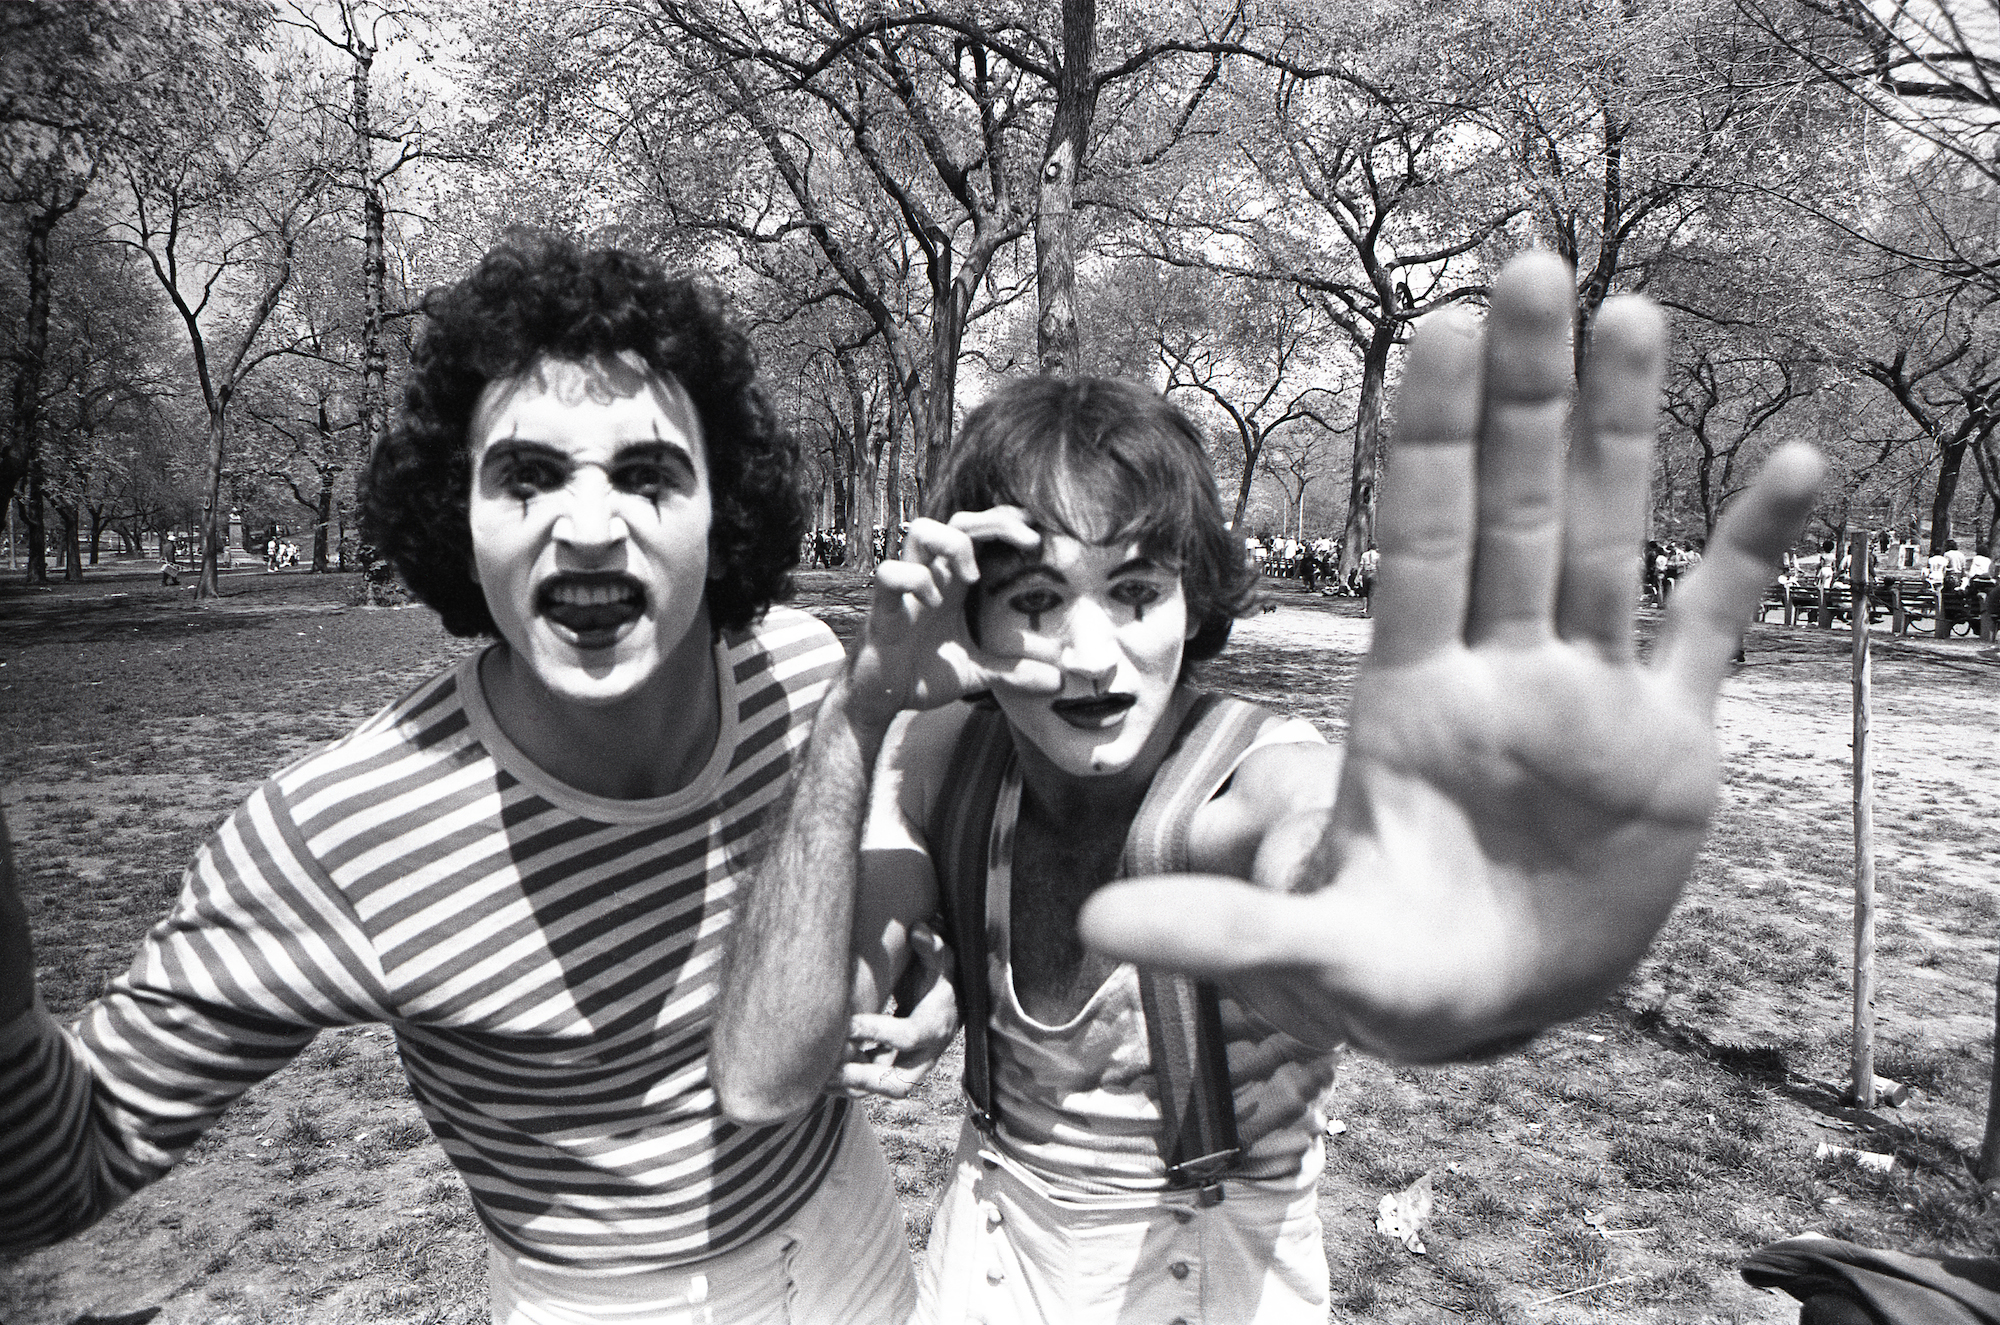 Robin Williams Central Park New York 1974